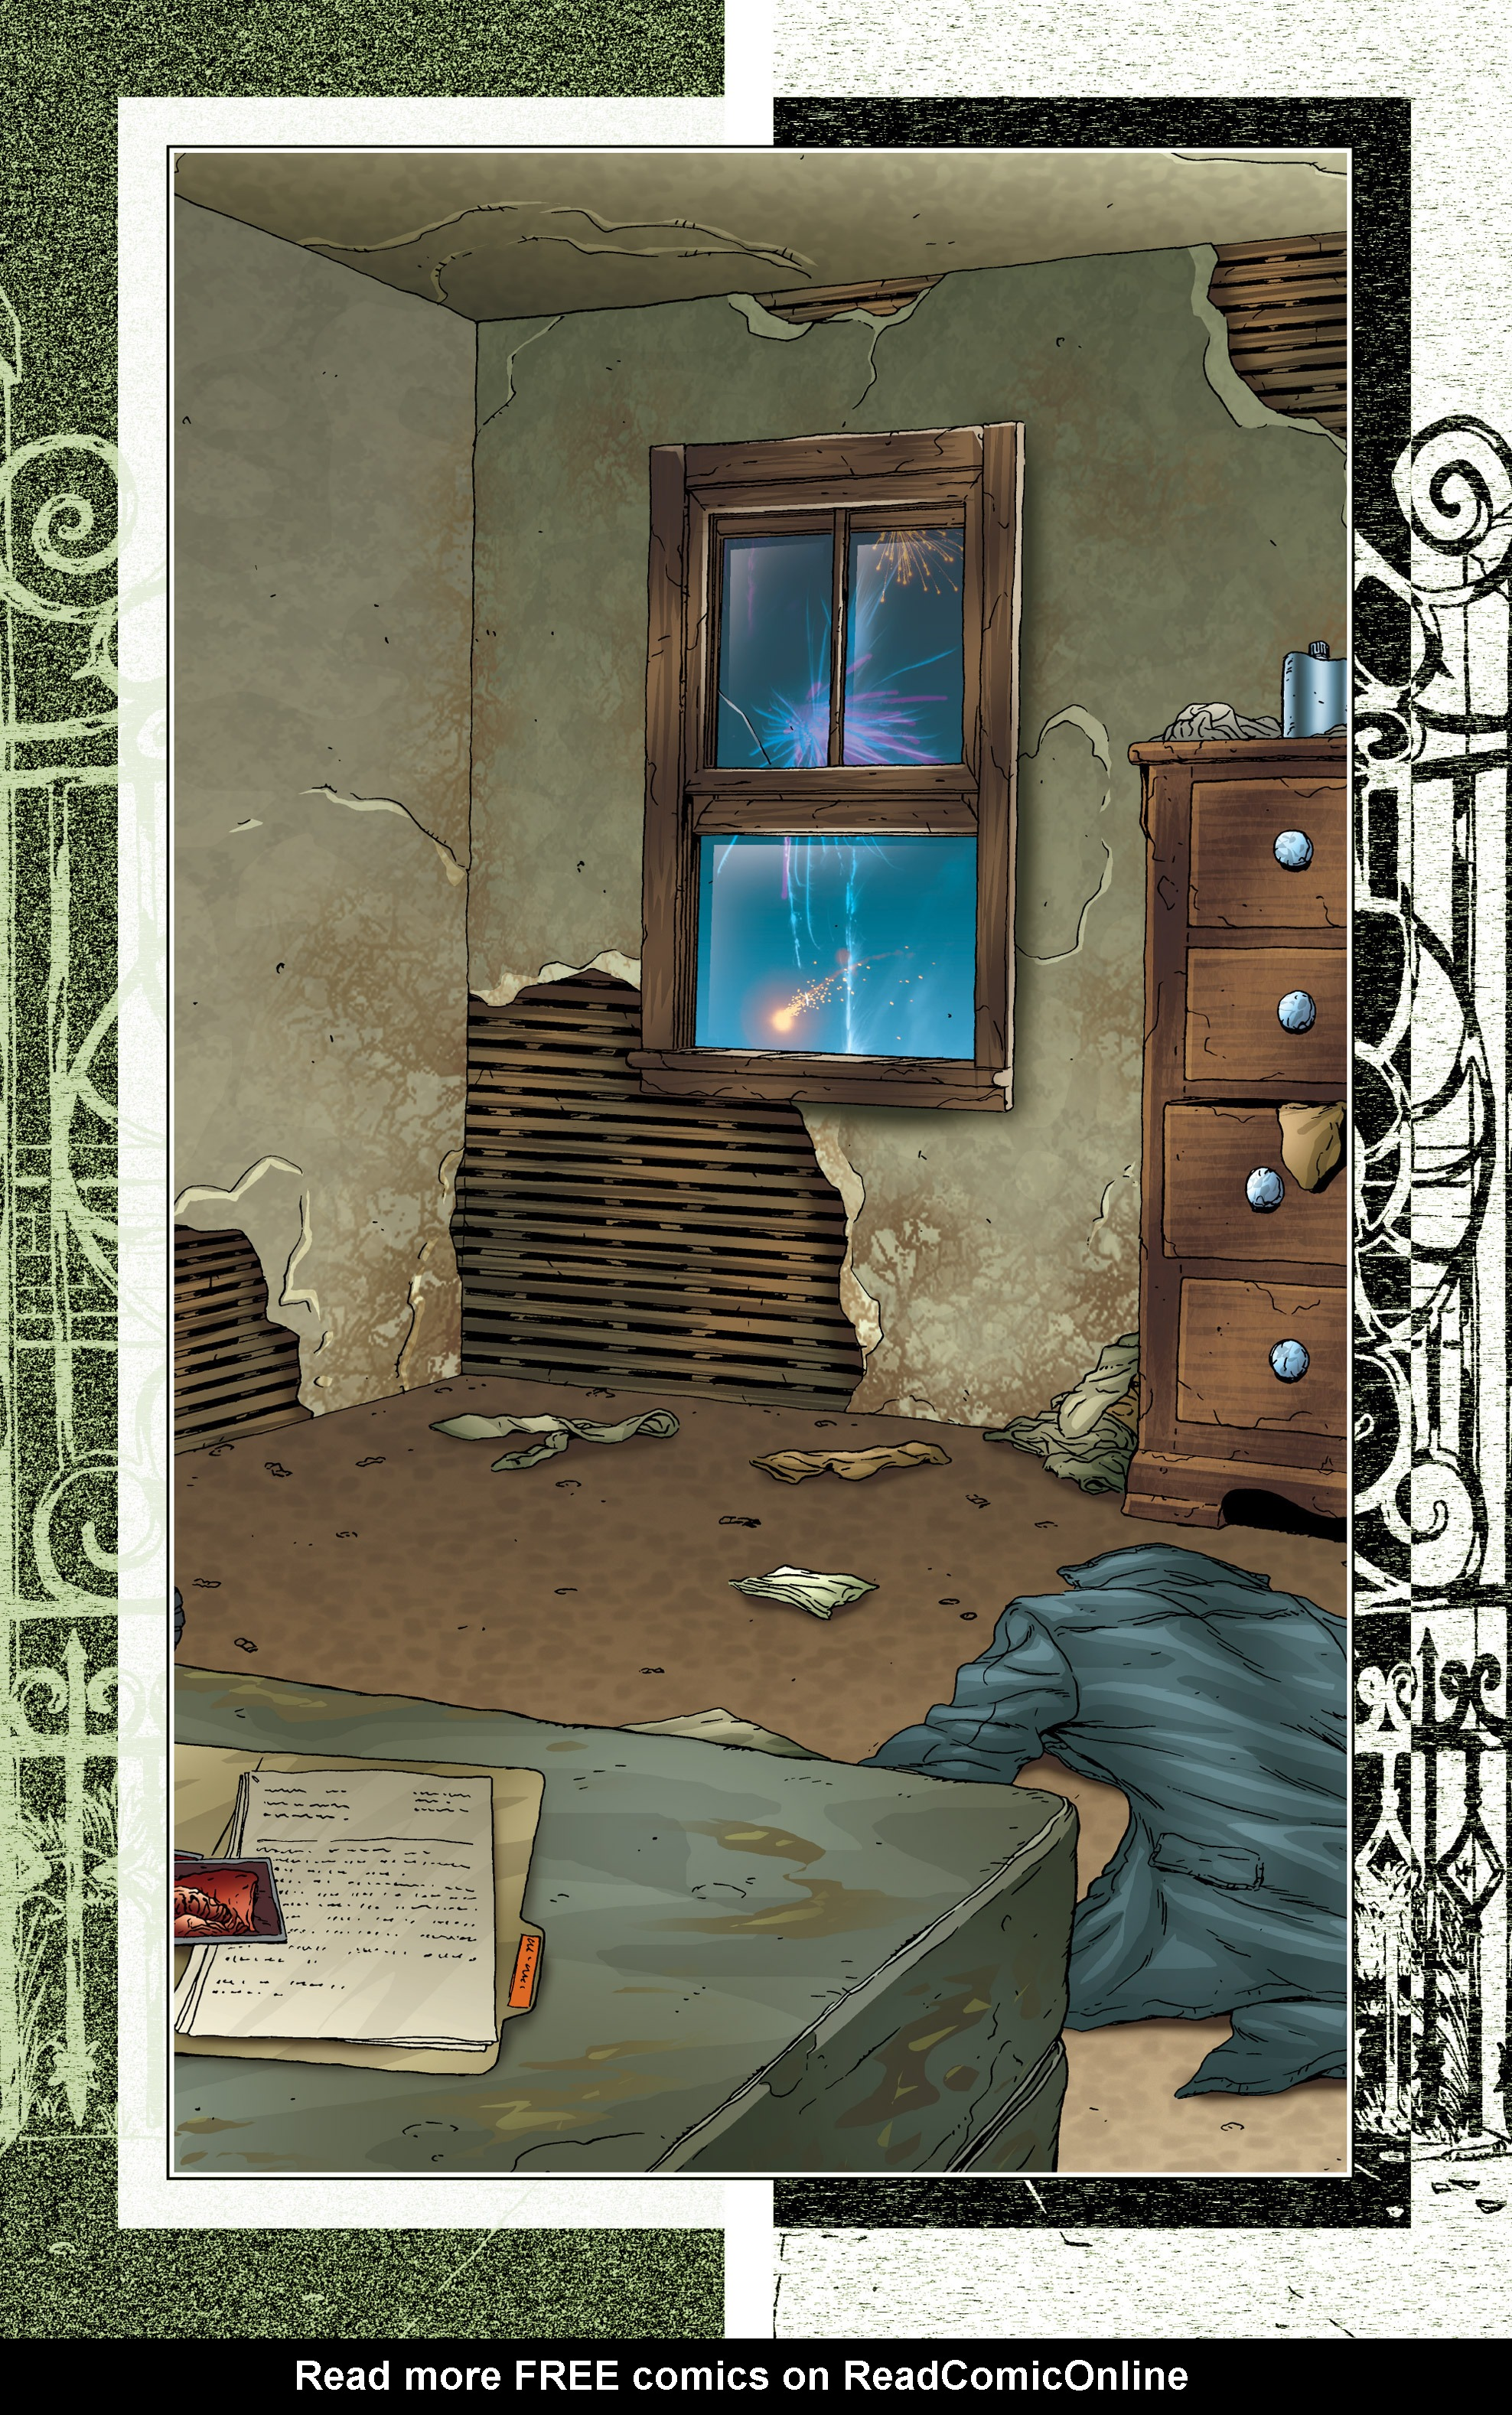 Read online Alan Moore's The Courtyard comic -  Issue # TPB - 5